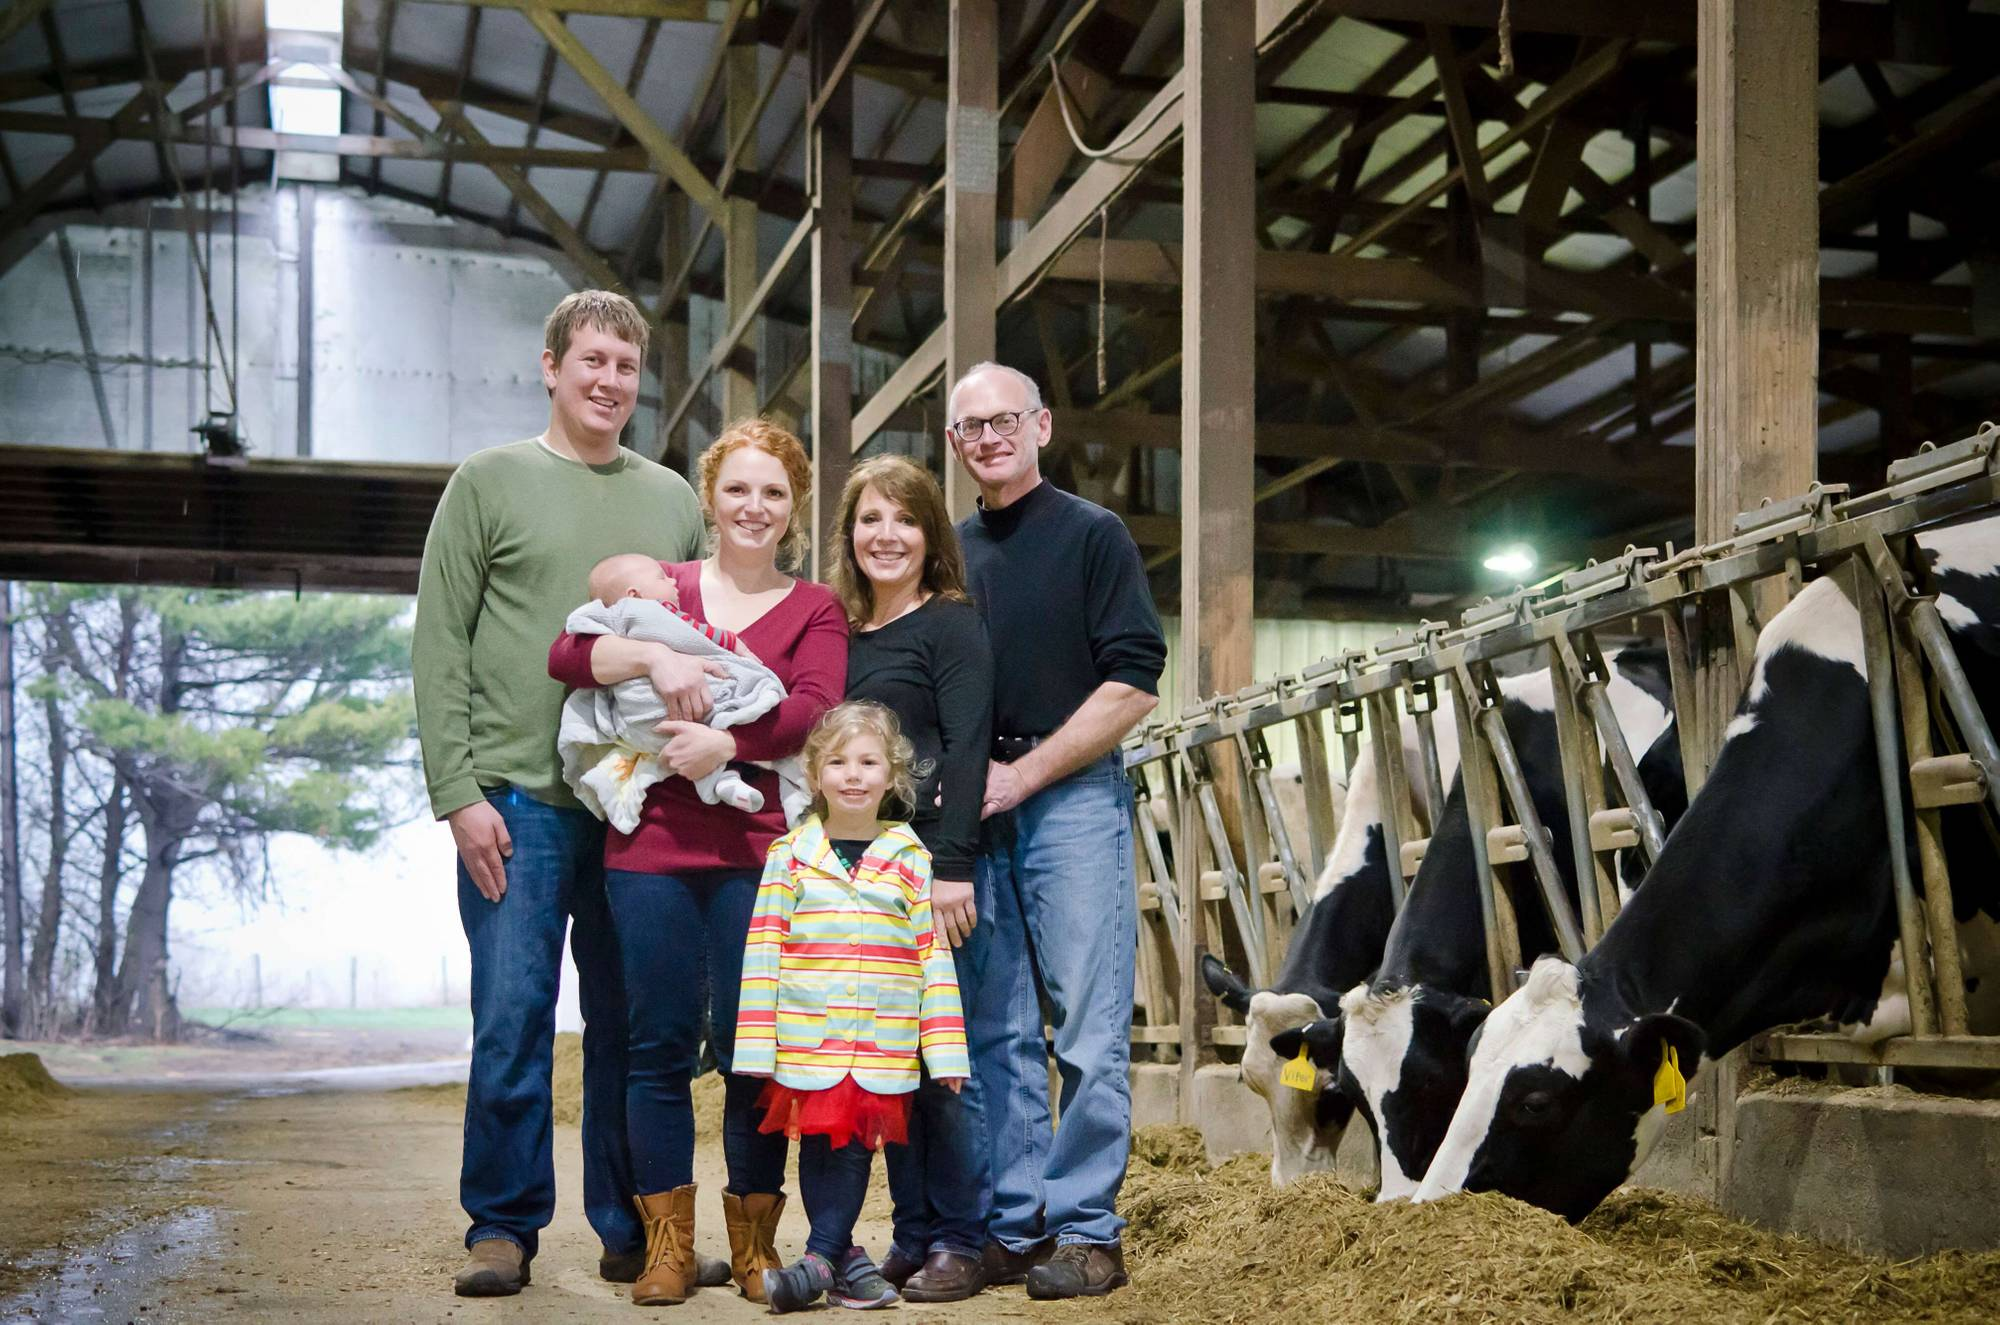 Three generations of a family, mom and dad, adult daughter and son-in-law, and two small children, pose in a dairy barn. Rewire PBS Work Redhead Creamery